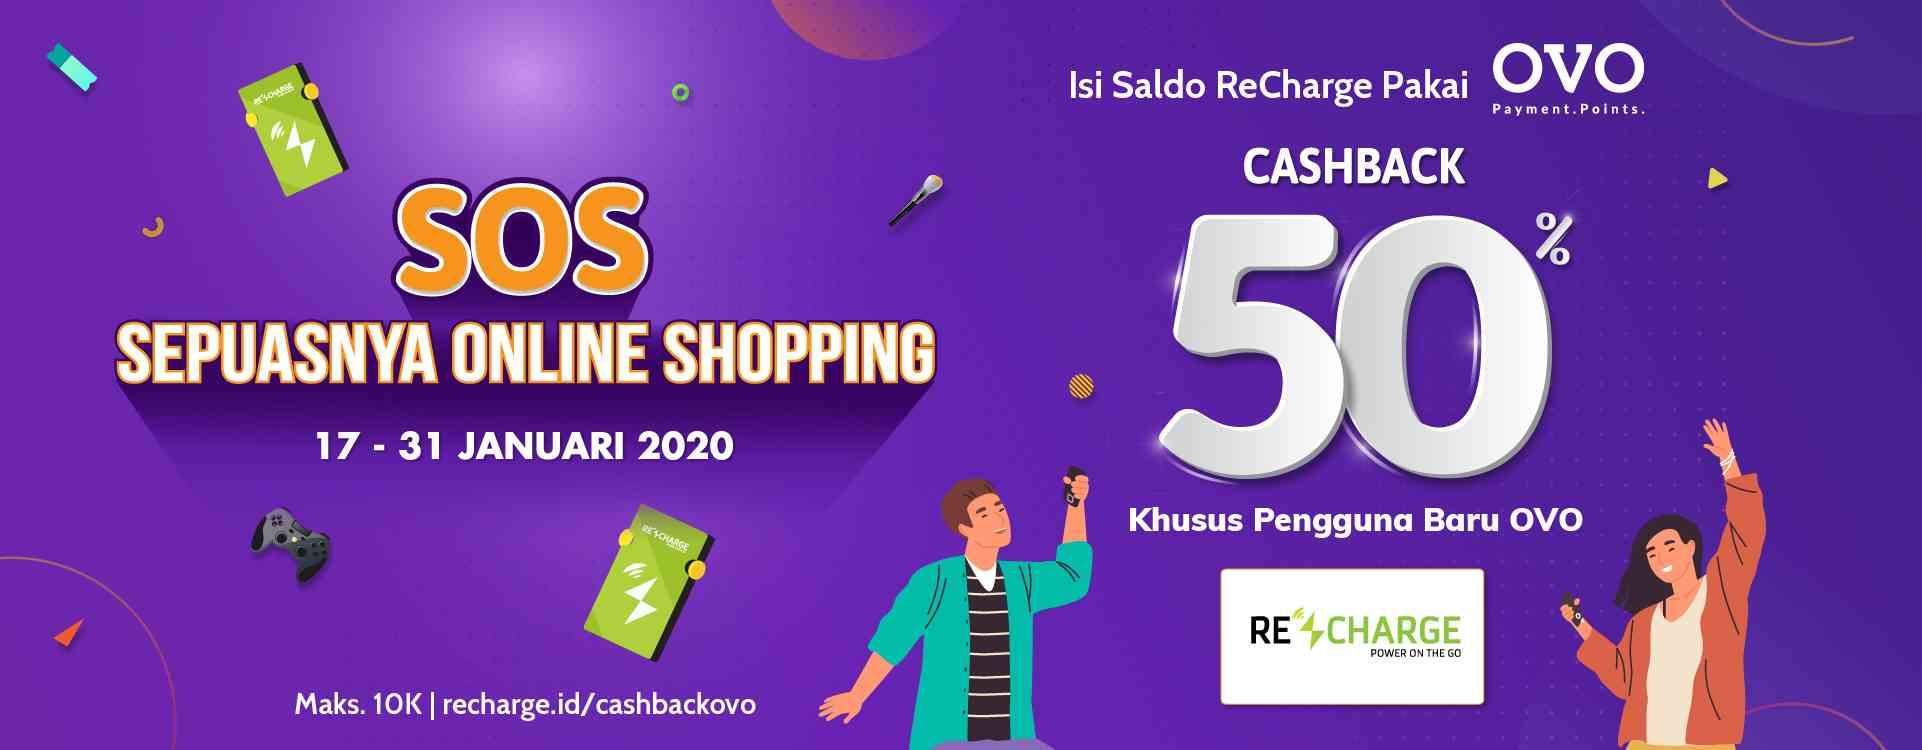 ReCharge Cashback 50% Top Up Saldo Pakai OVO!